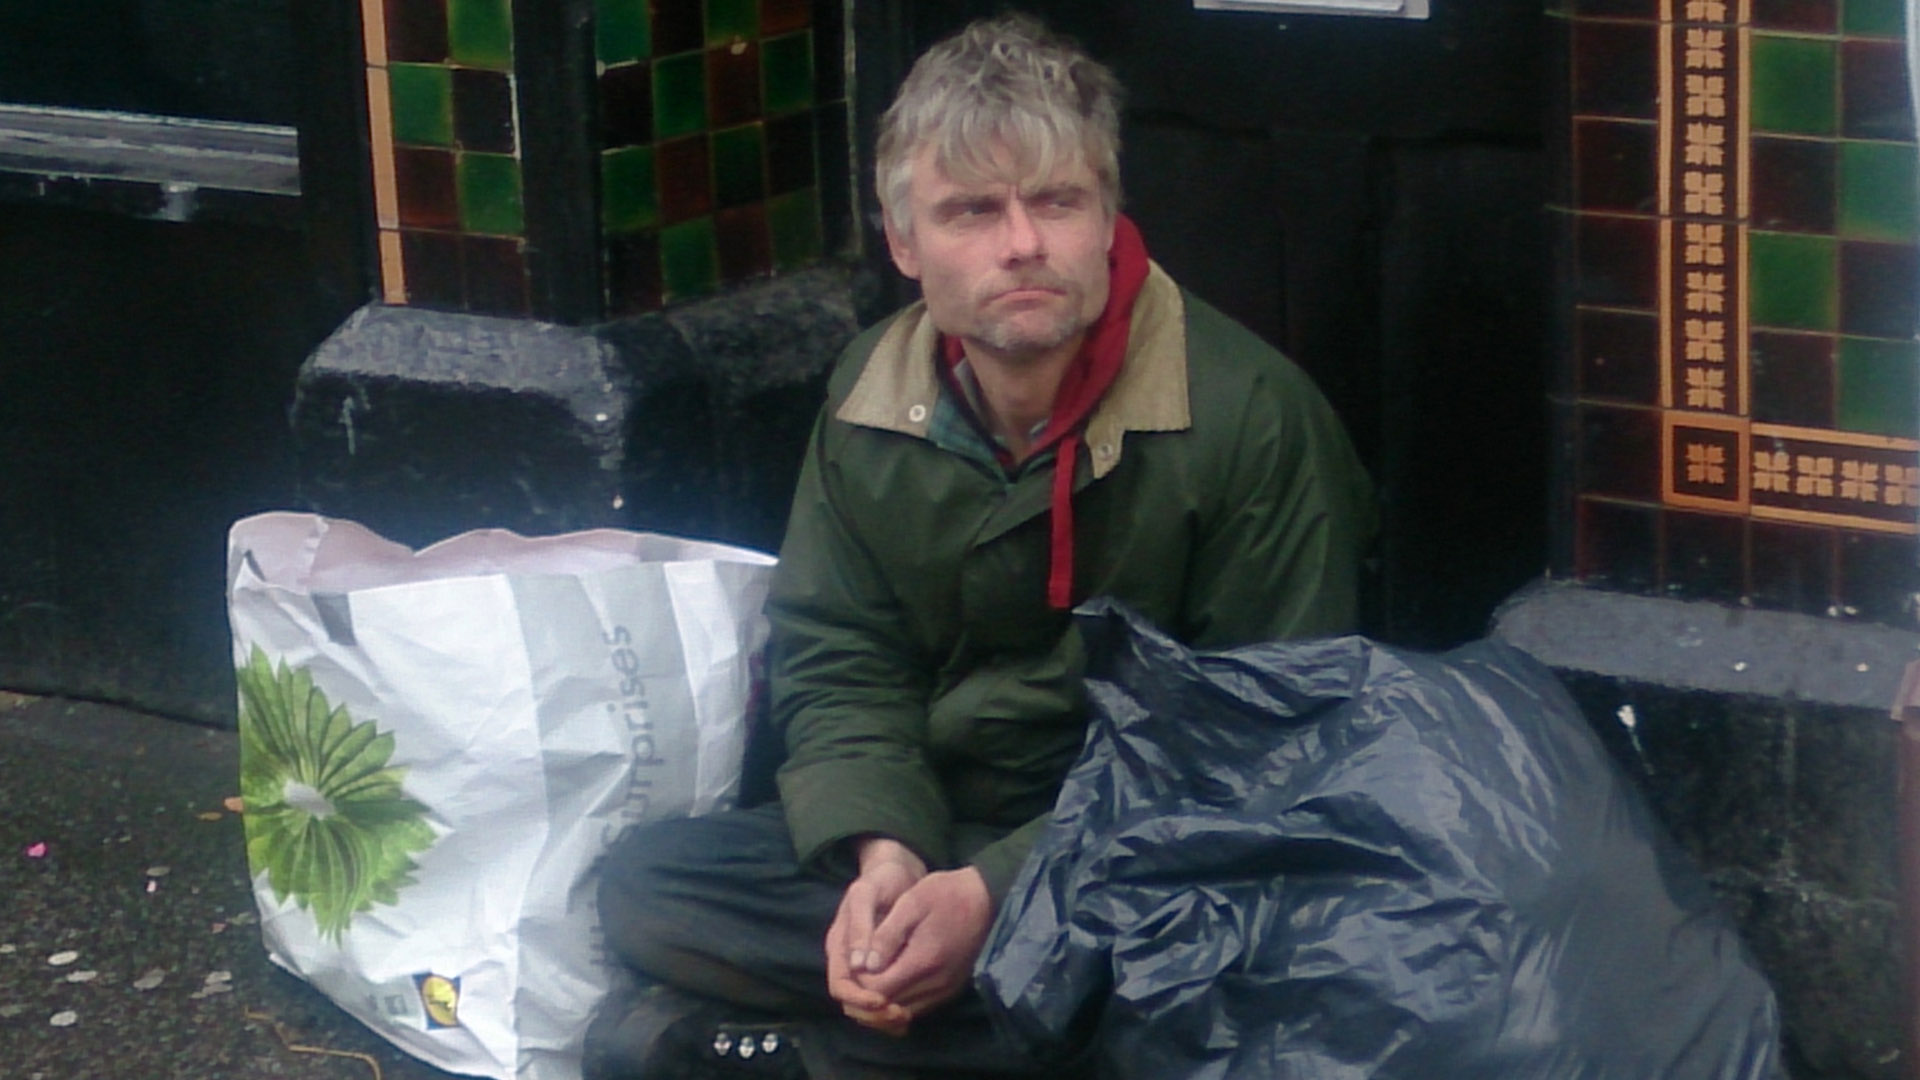 Bournemouth's homeless face hard winter